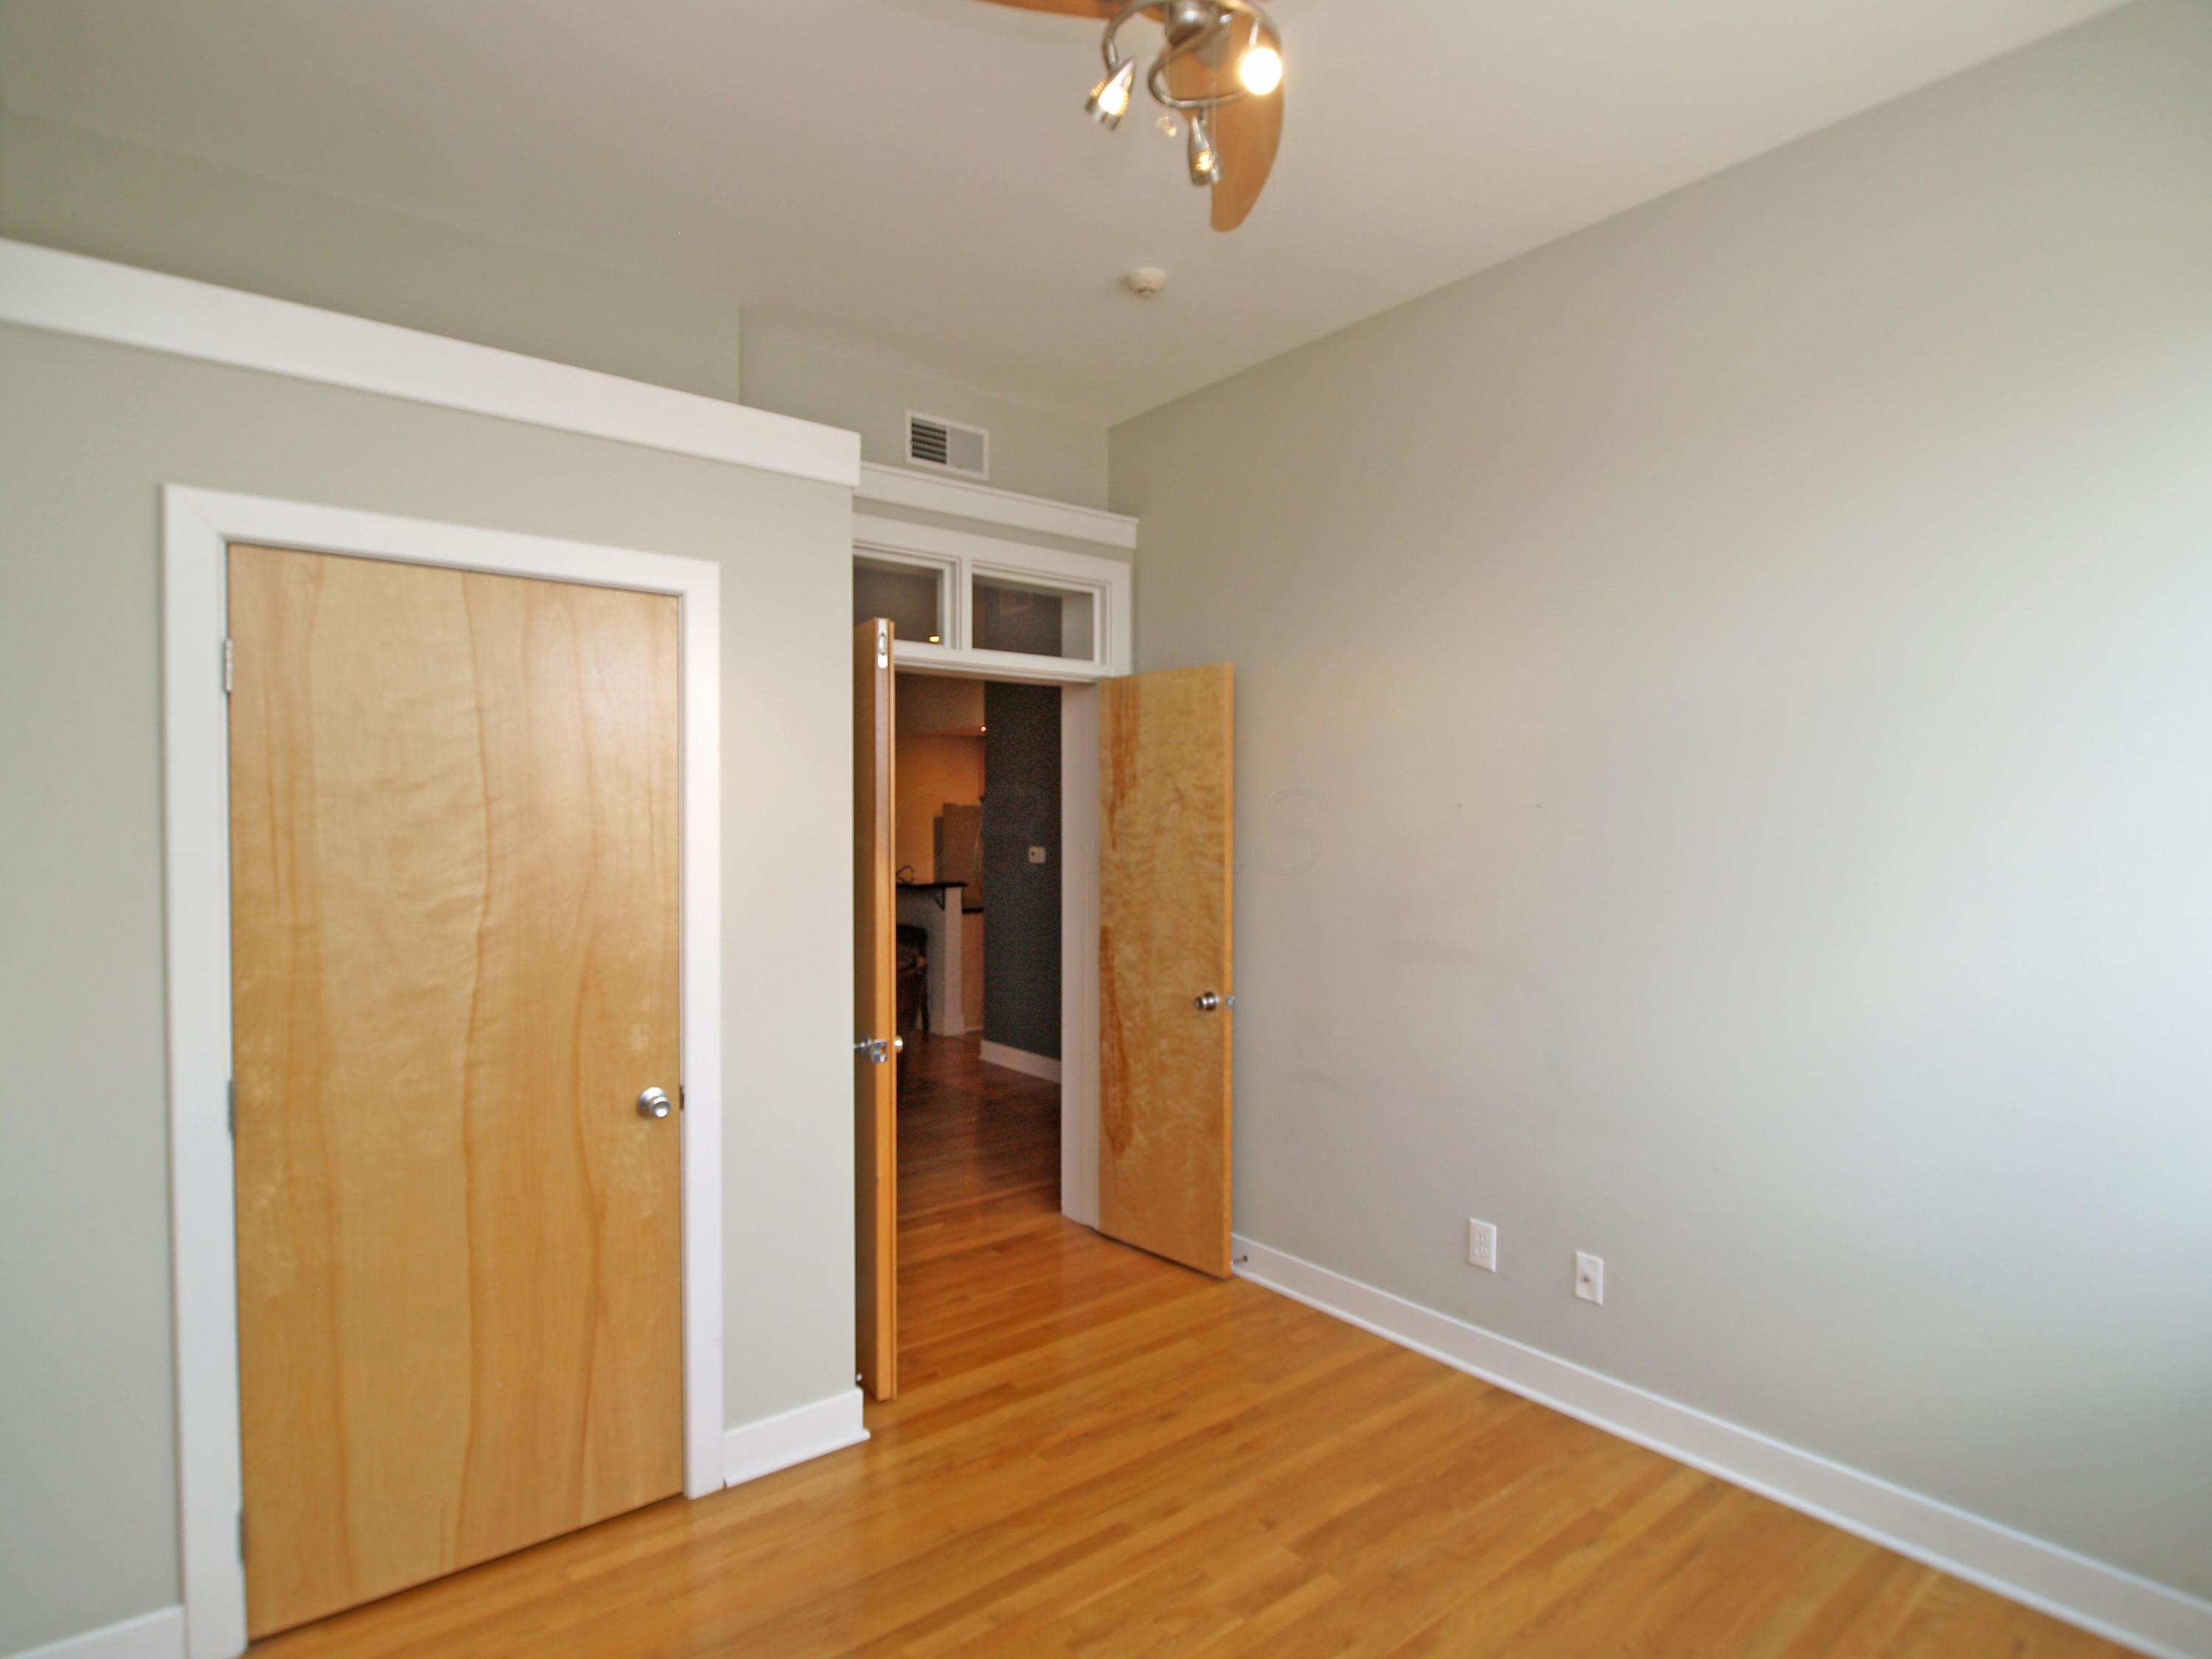 1276 High Street, Columbus, Ohio 43201, 2 Bedrooms Bedrooms, ,1 BathroomBathrooms,Residential,For Sale,High,220018729